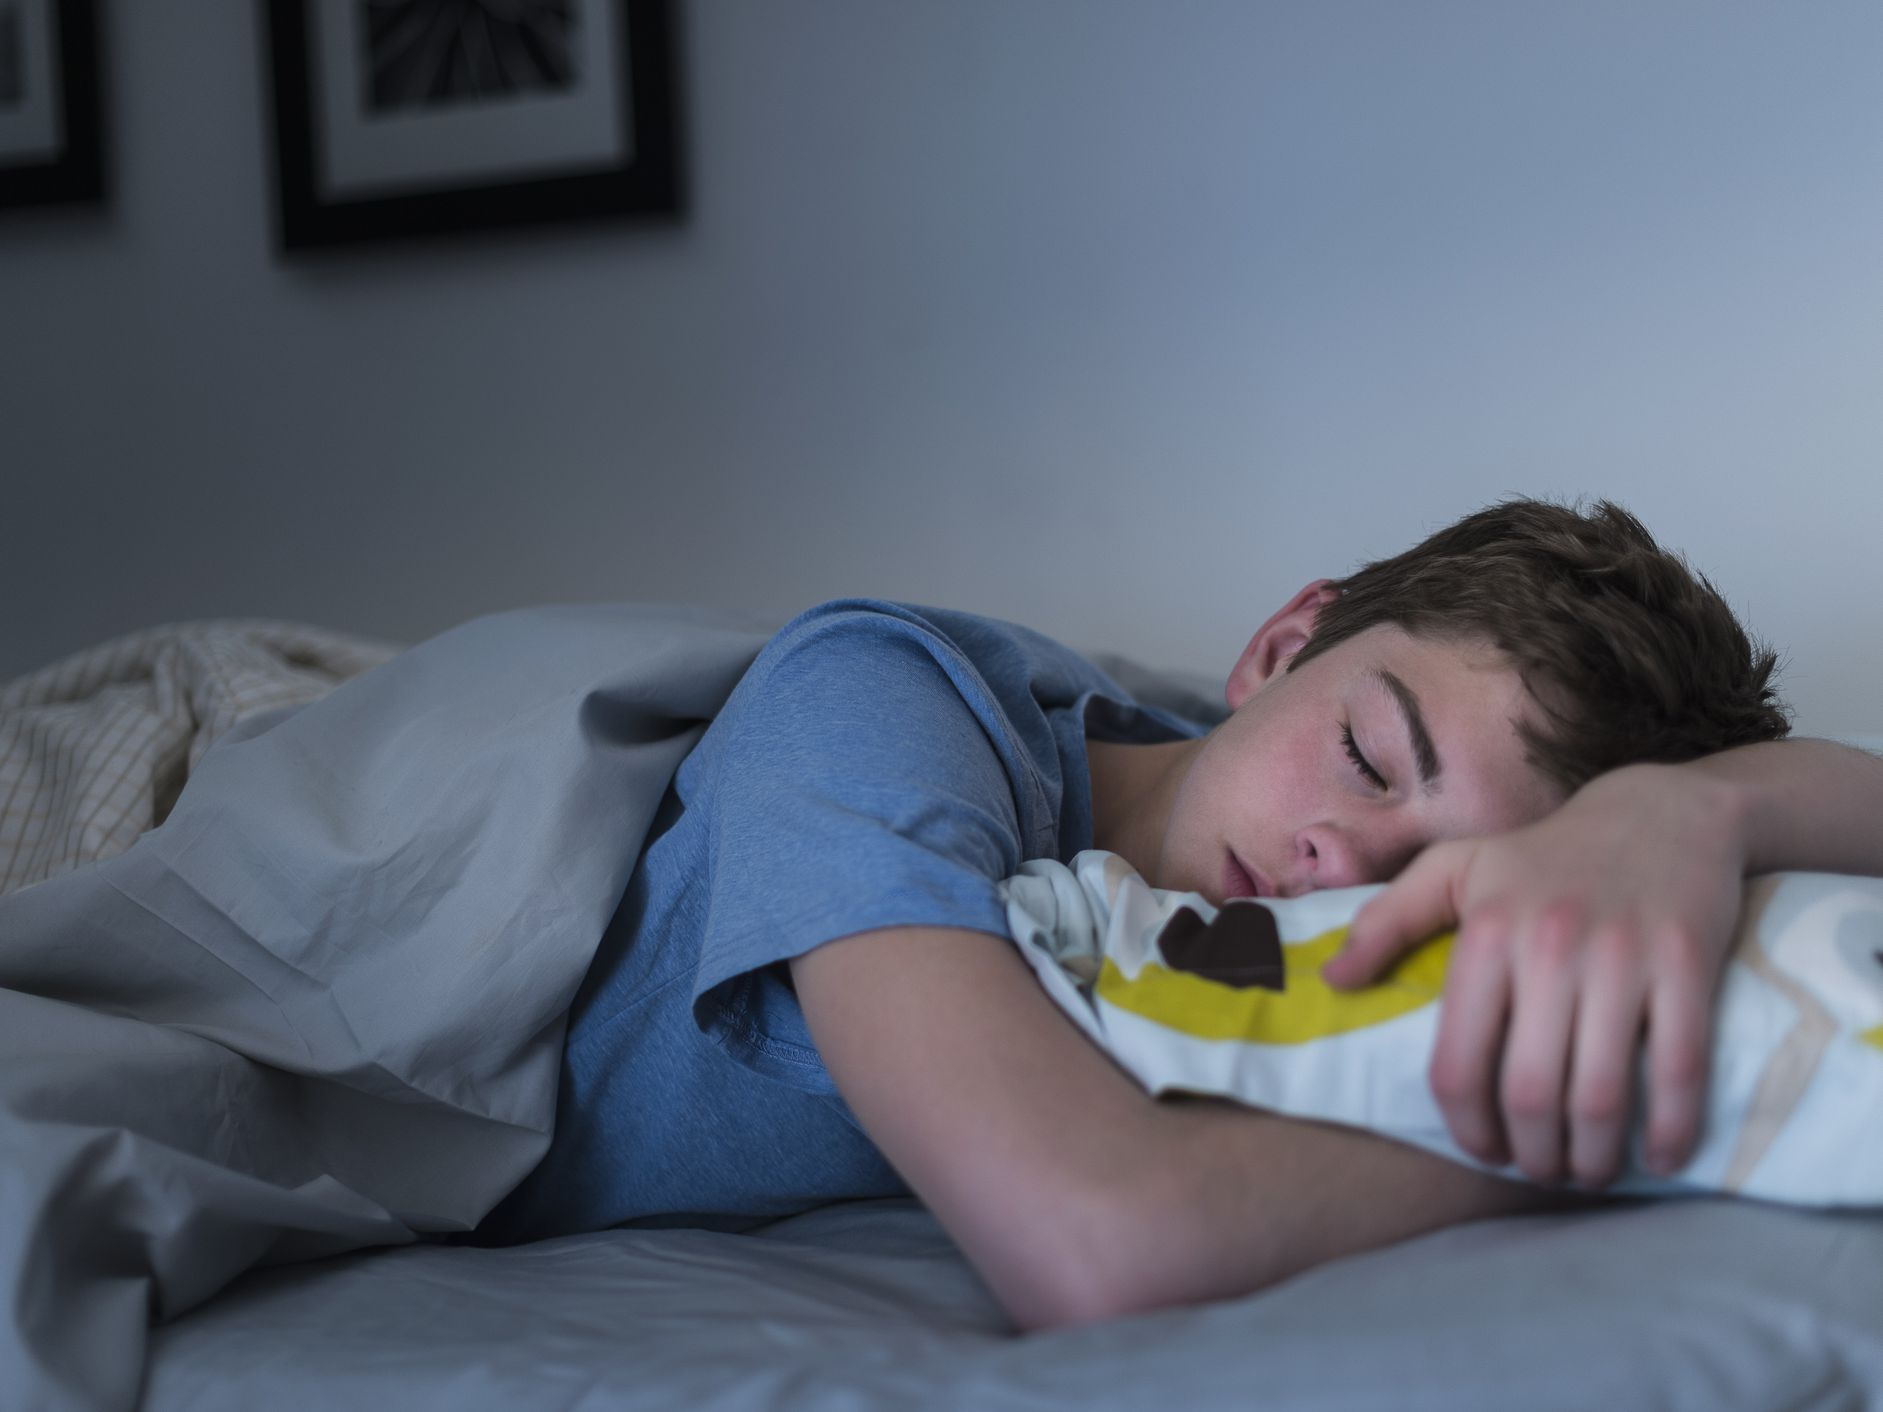 Sudden adult bed wetting